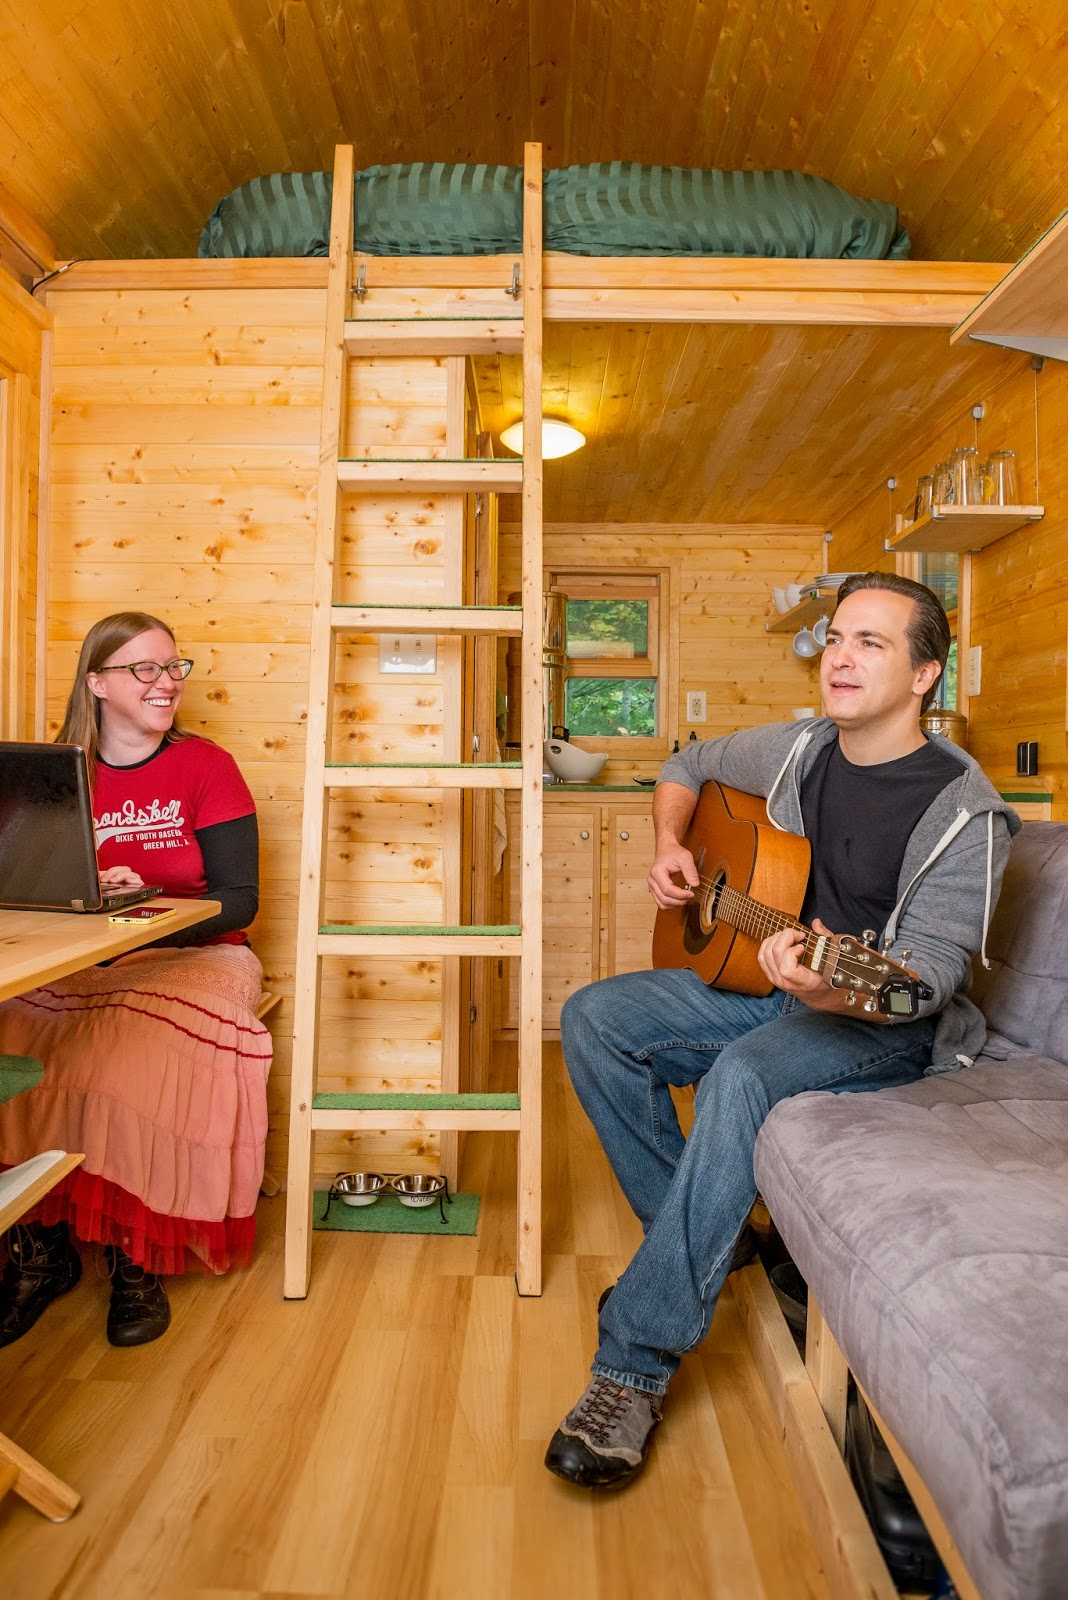 Laura-and-Matt-Tiny-House1.jpg